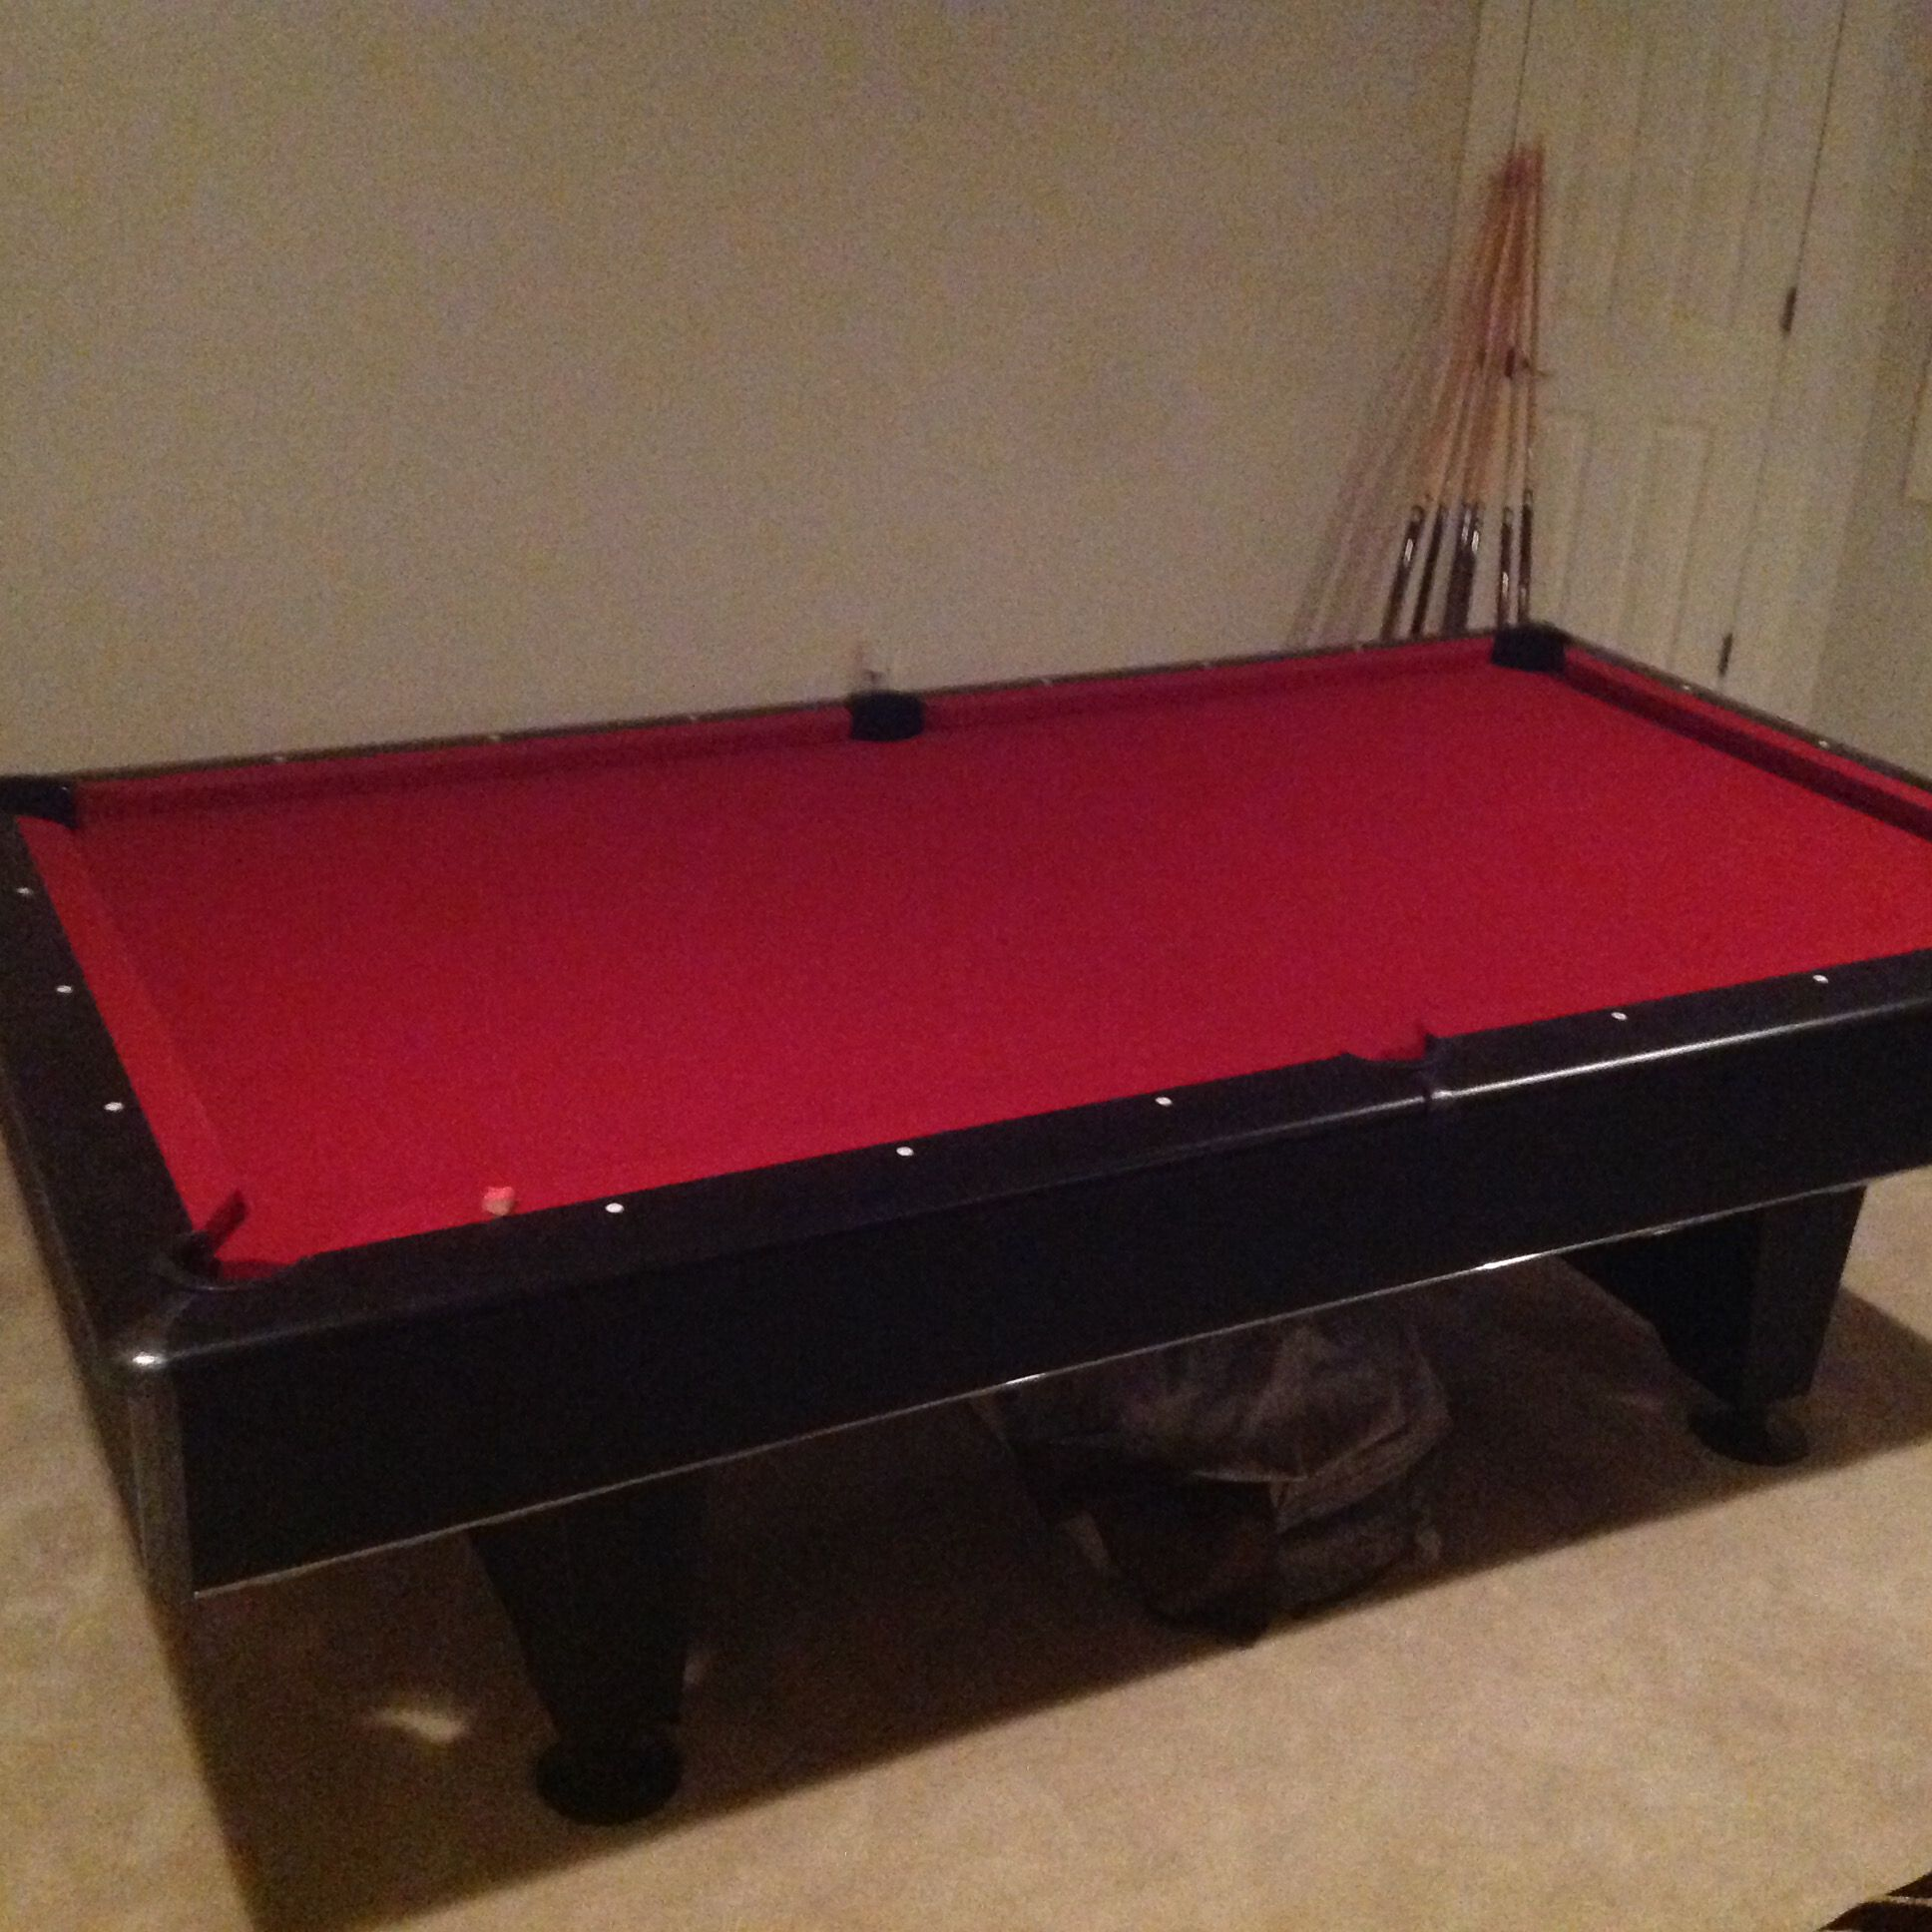 Lovely Pool Table Chicago   New Used Billiard Pool Tables Mover Refelt Recushion  Install Crating Buy Sell Pool Tables Chicago Illinois Il